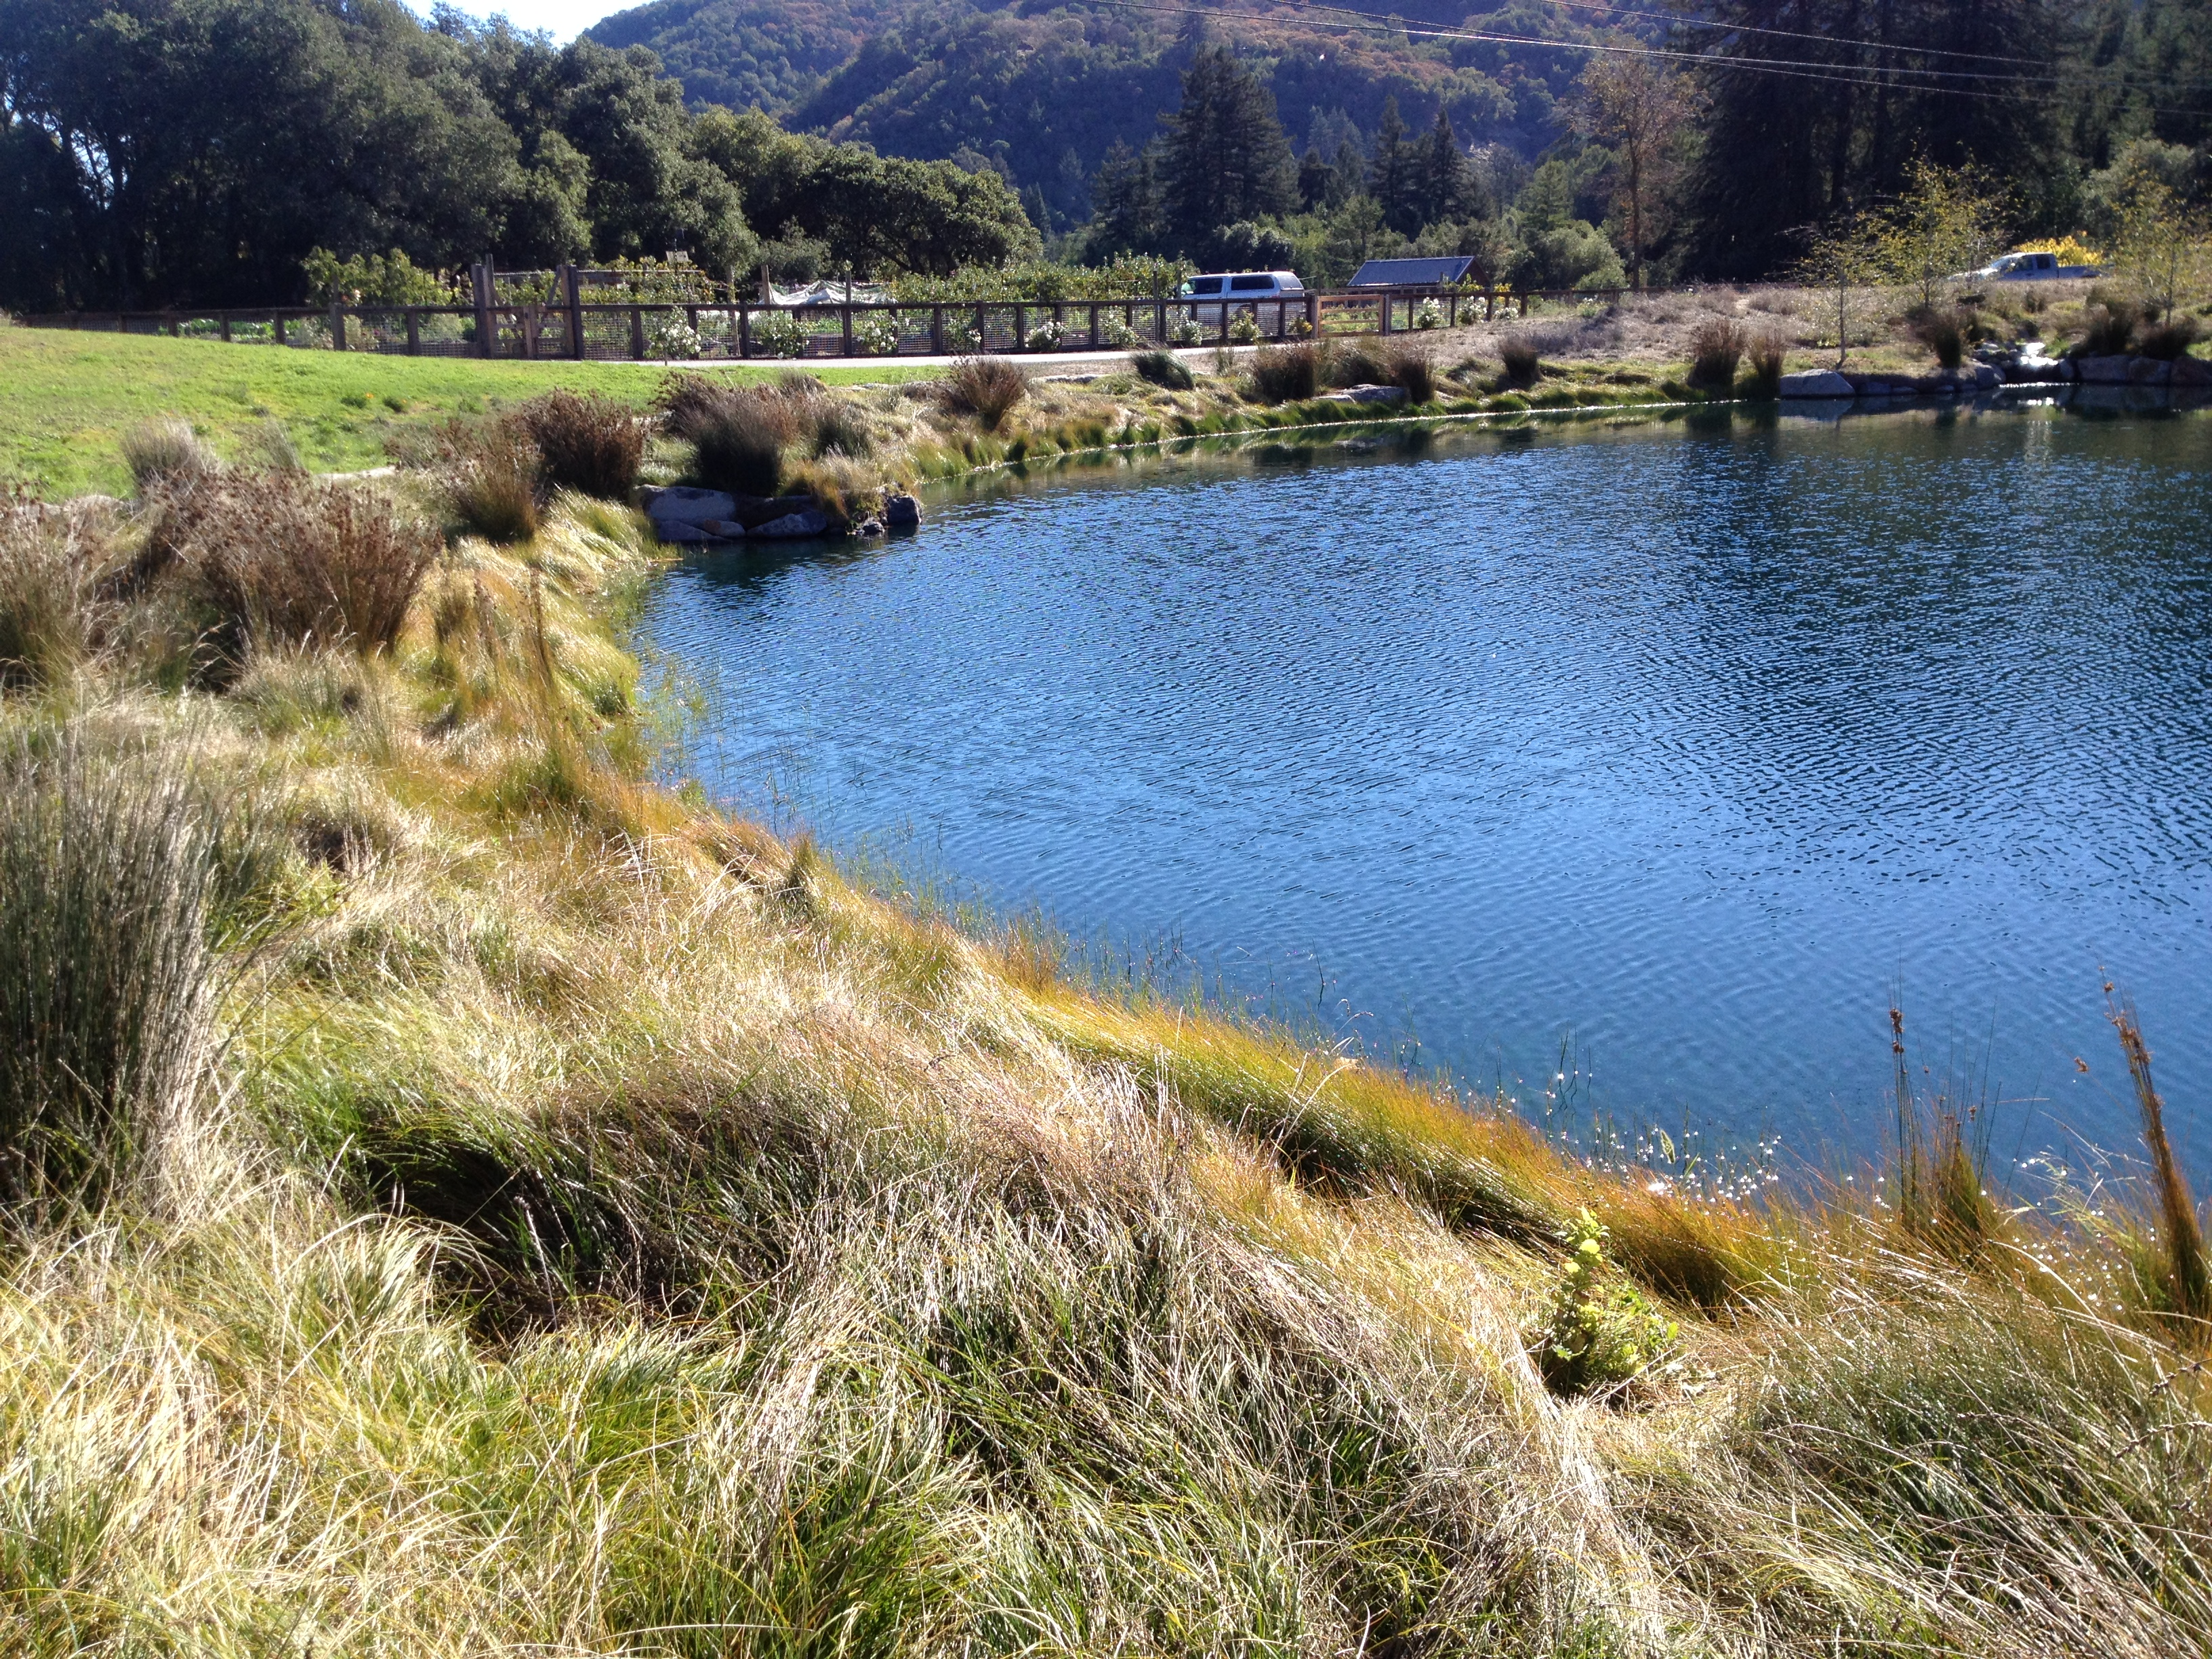 PCI Designed And Constructed A 5.5 Acre Foot Swimming Pond And Its  Surrounding Landscape On A Private Ranch On Sonoma Mountain.